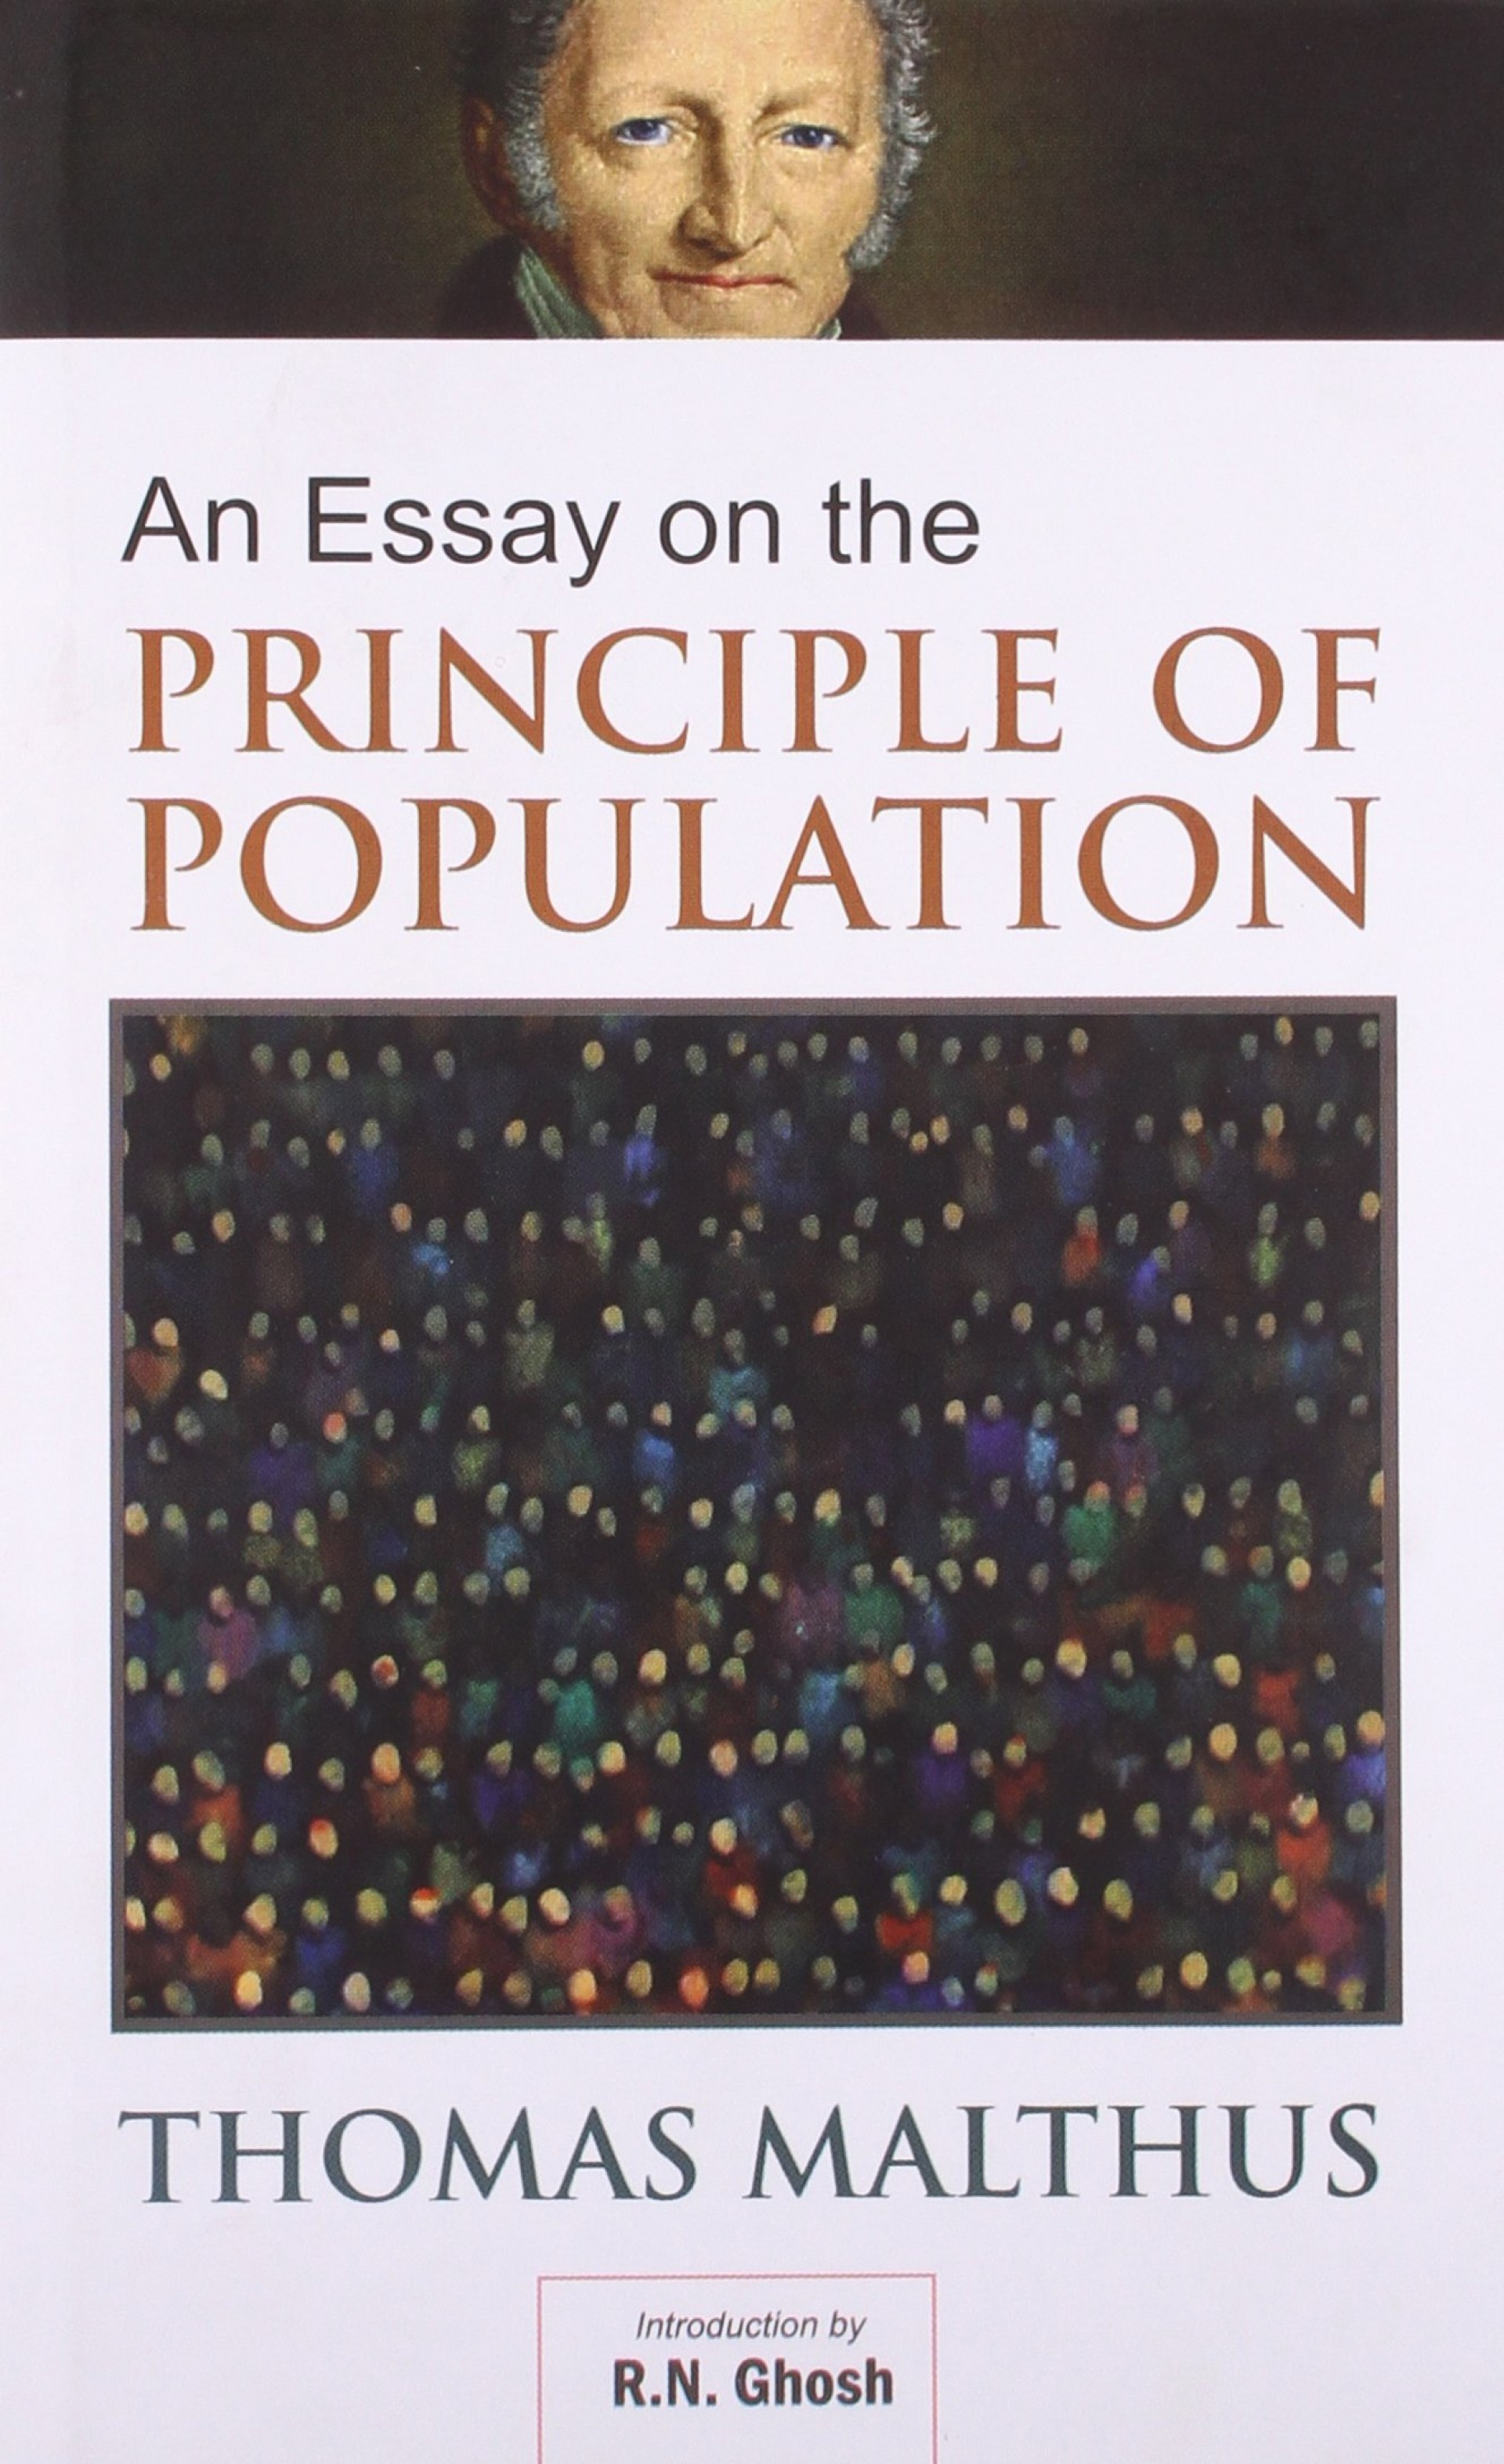 009 An Essay On The Principle Of Population Example Fascinating By Thomas Malthus Pdf In Concluded Which Following 1920